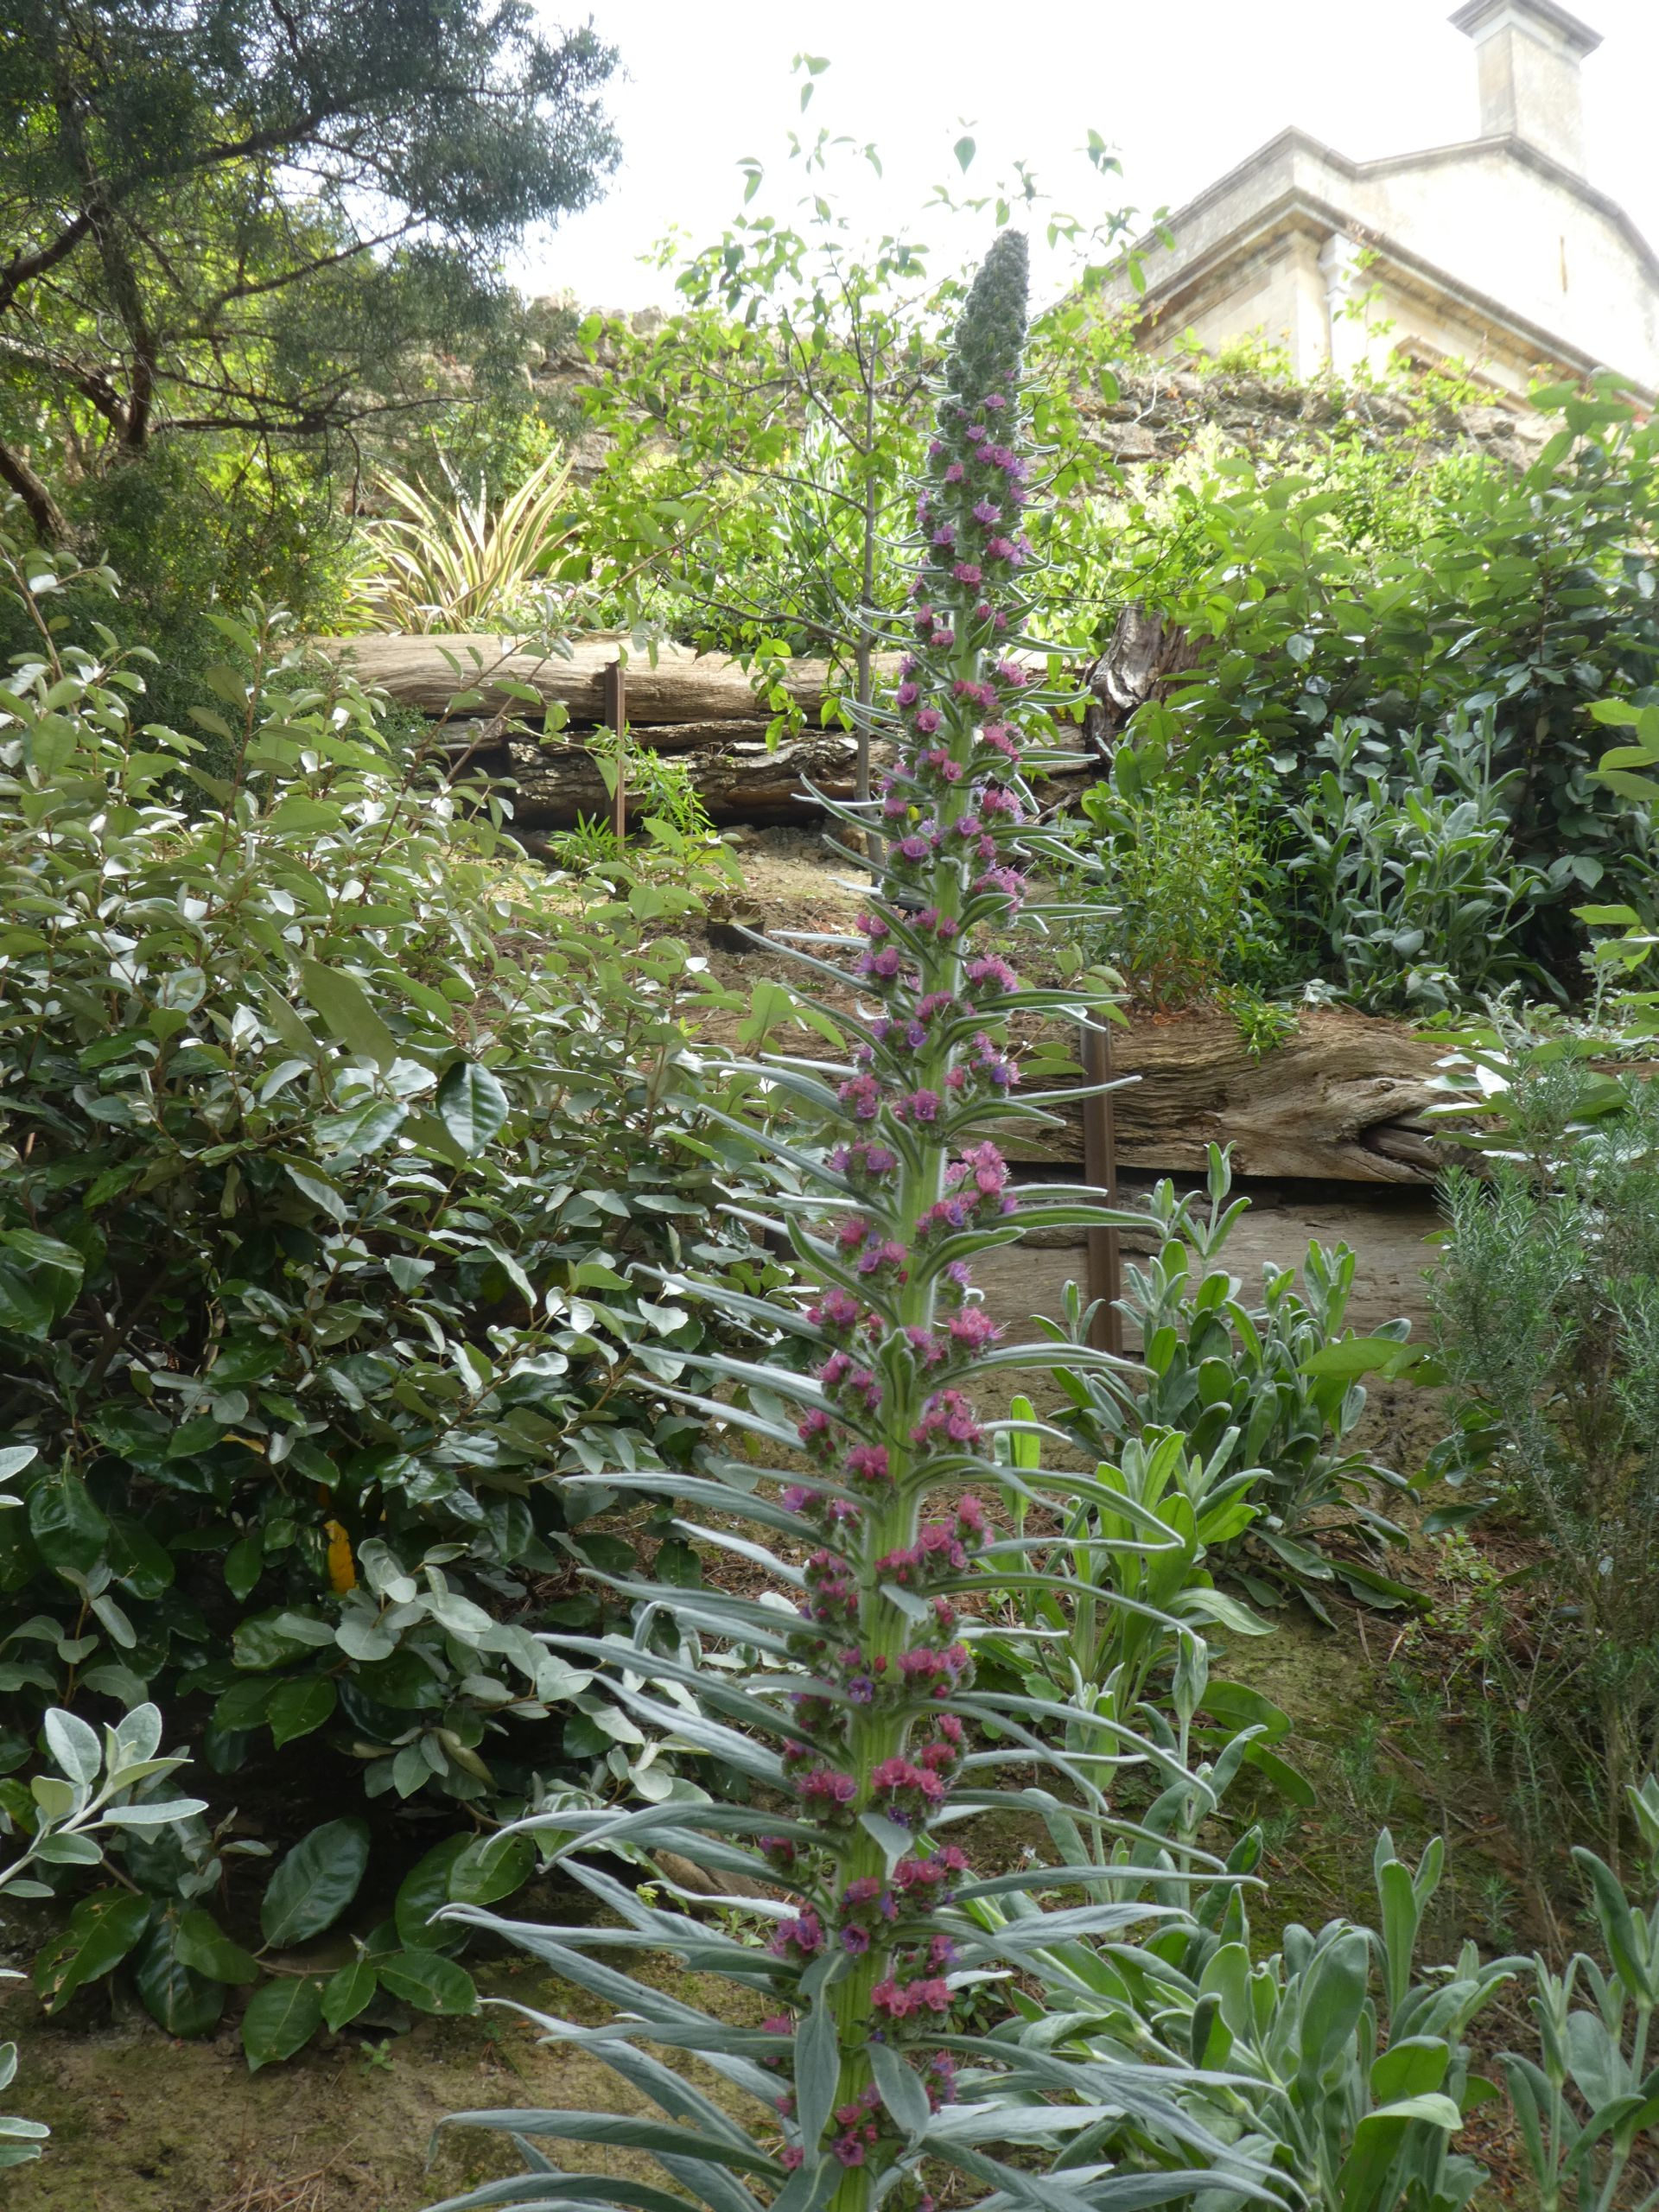 Echium Red Rocket on the banks